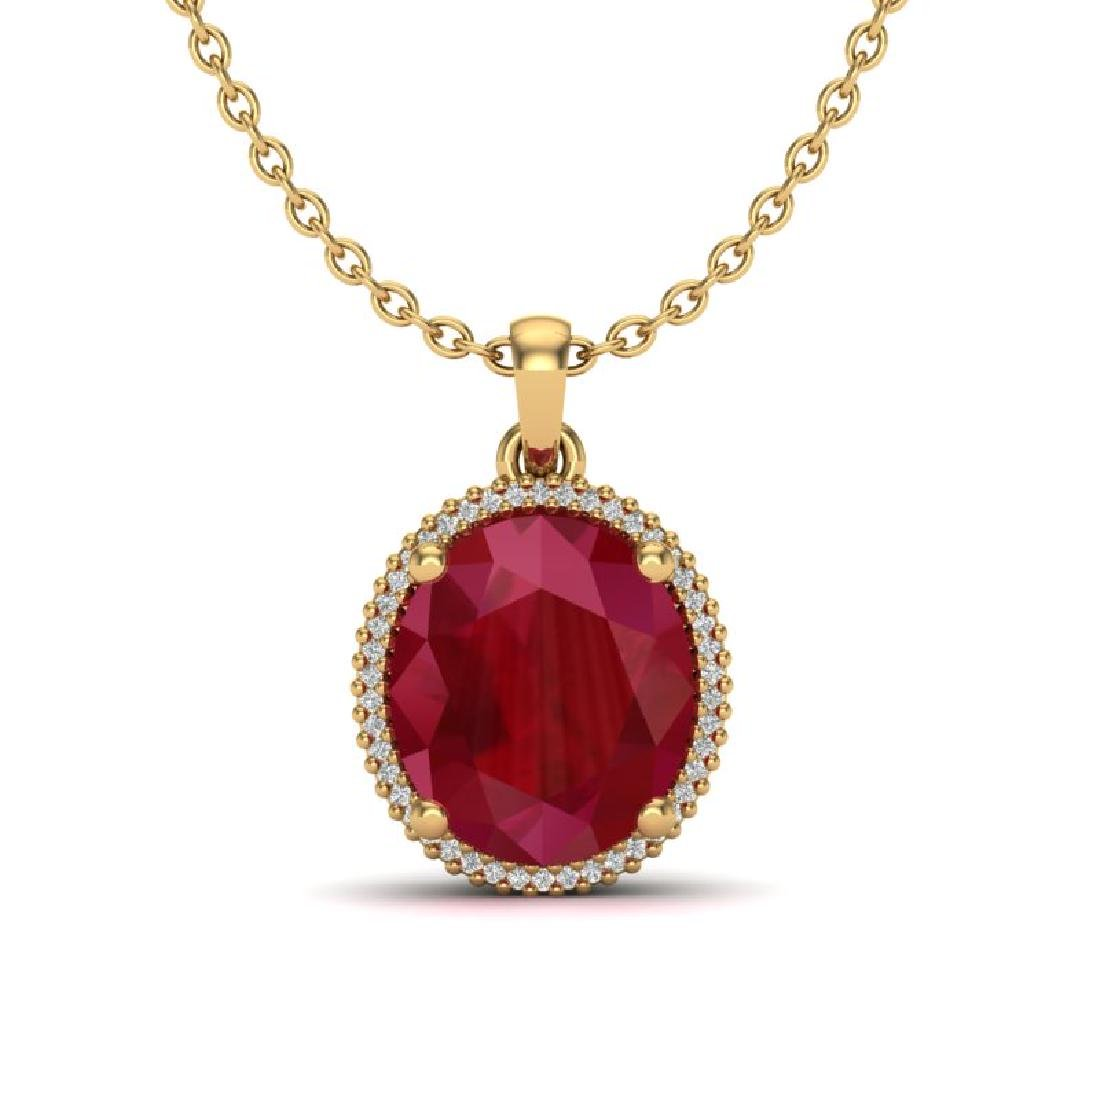 12 CTW Ruby & Micro Pave VS/SI Diamond Halo Necklace